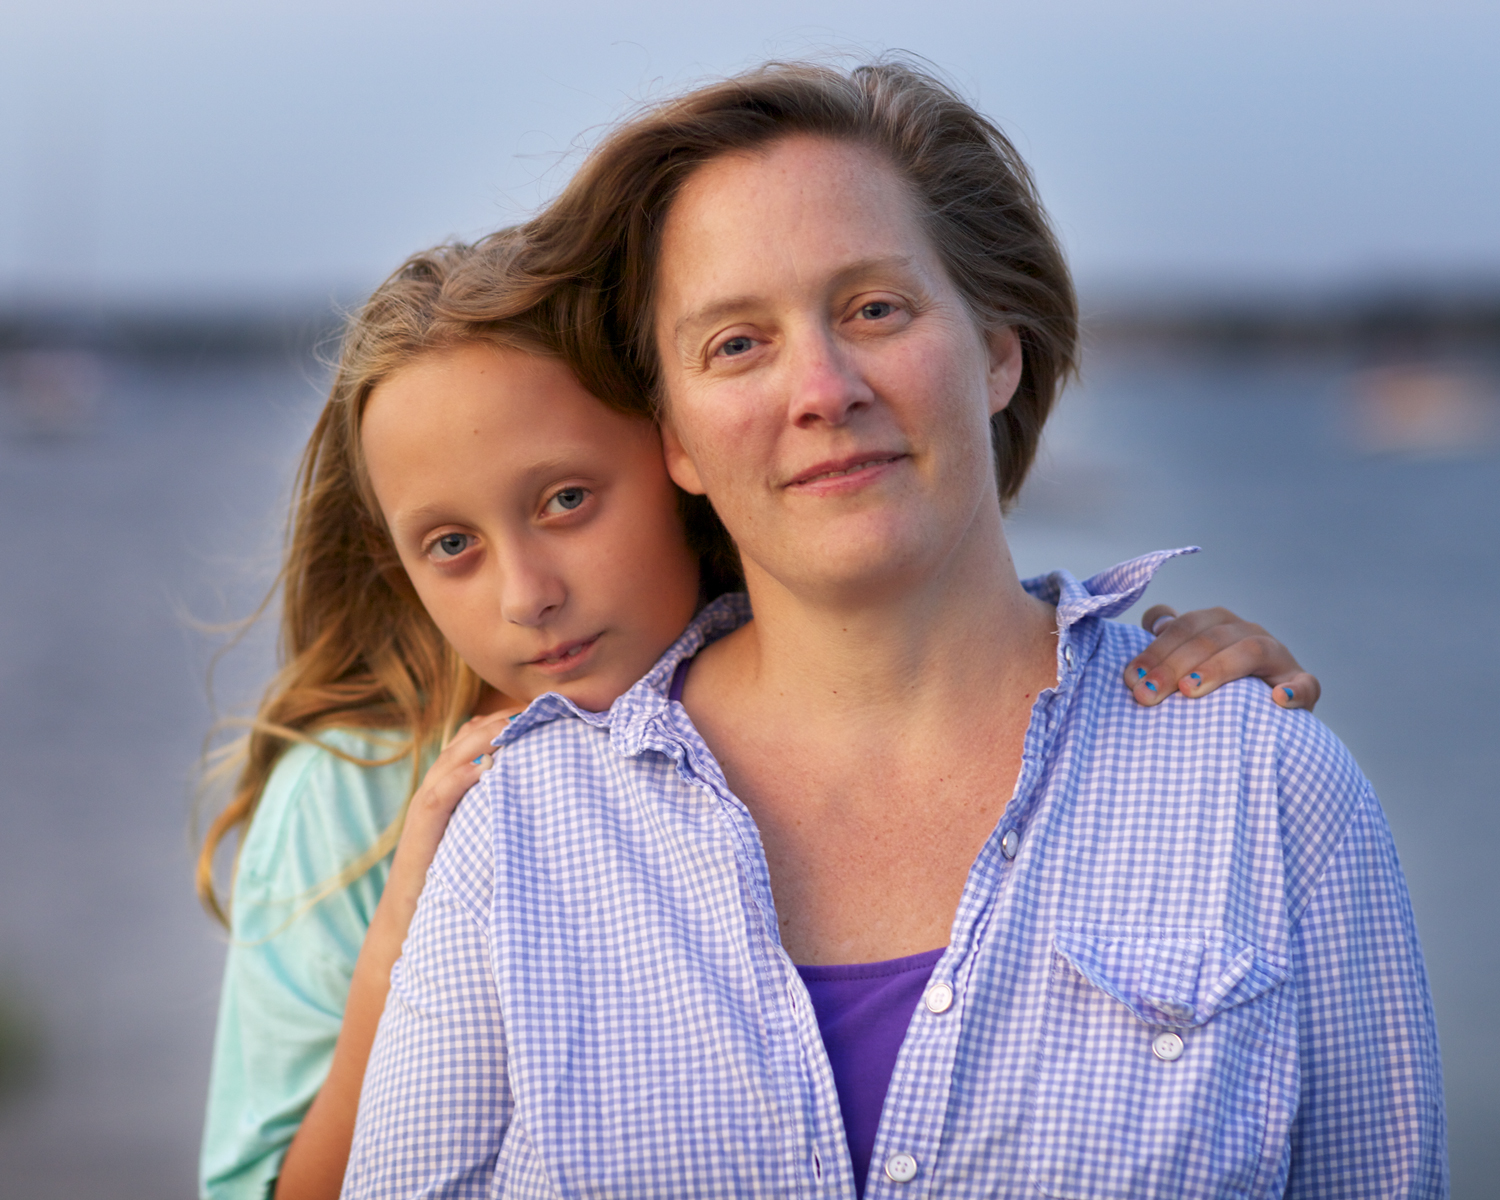 Mother & Daughter Portrait at sunset